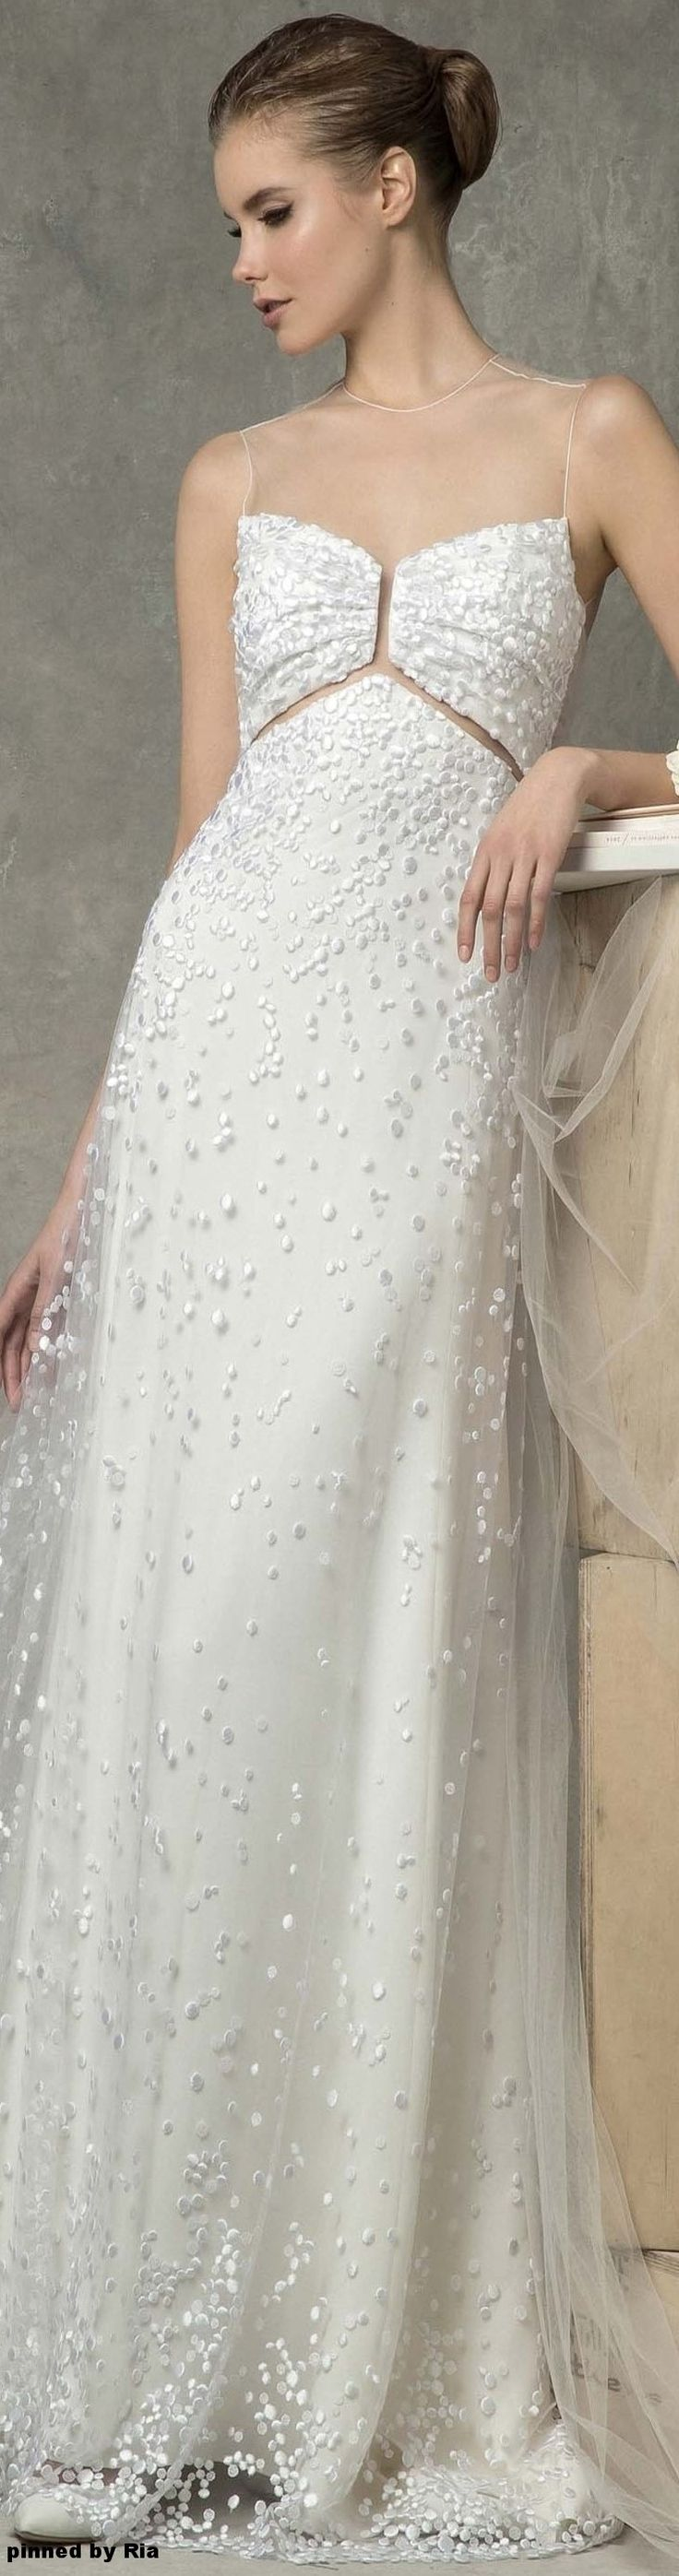 Angel Sanchez Bridal Spring 2017 l Ria V